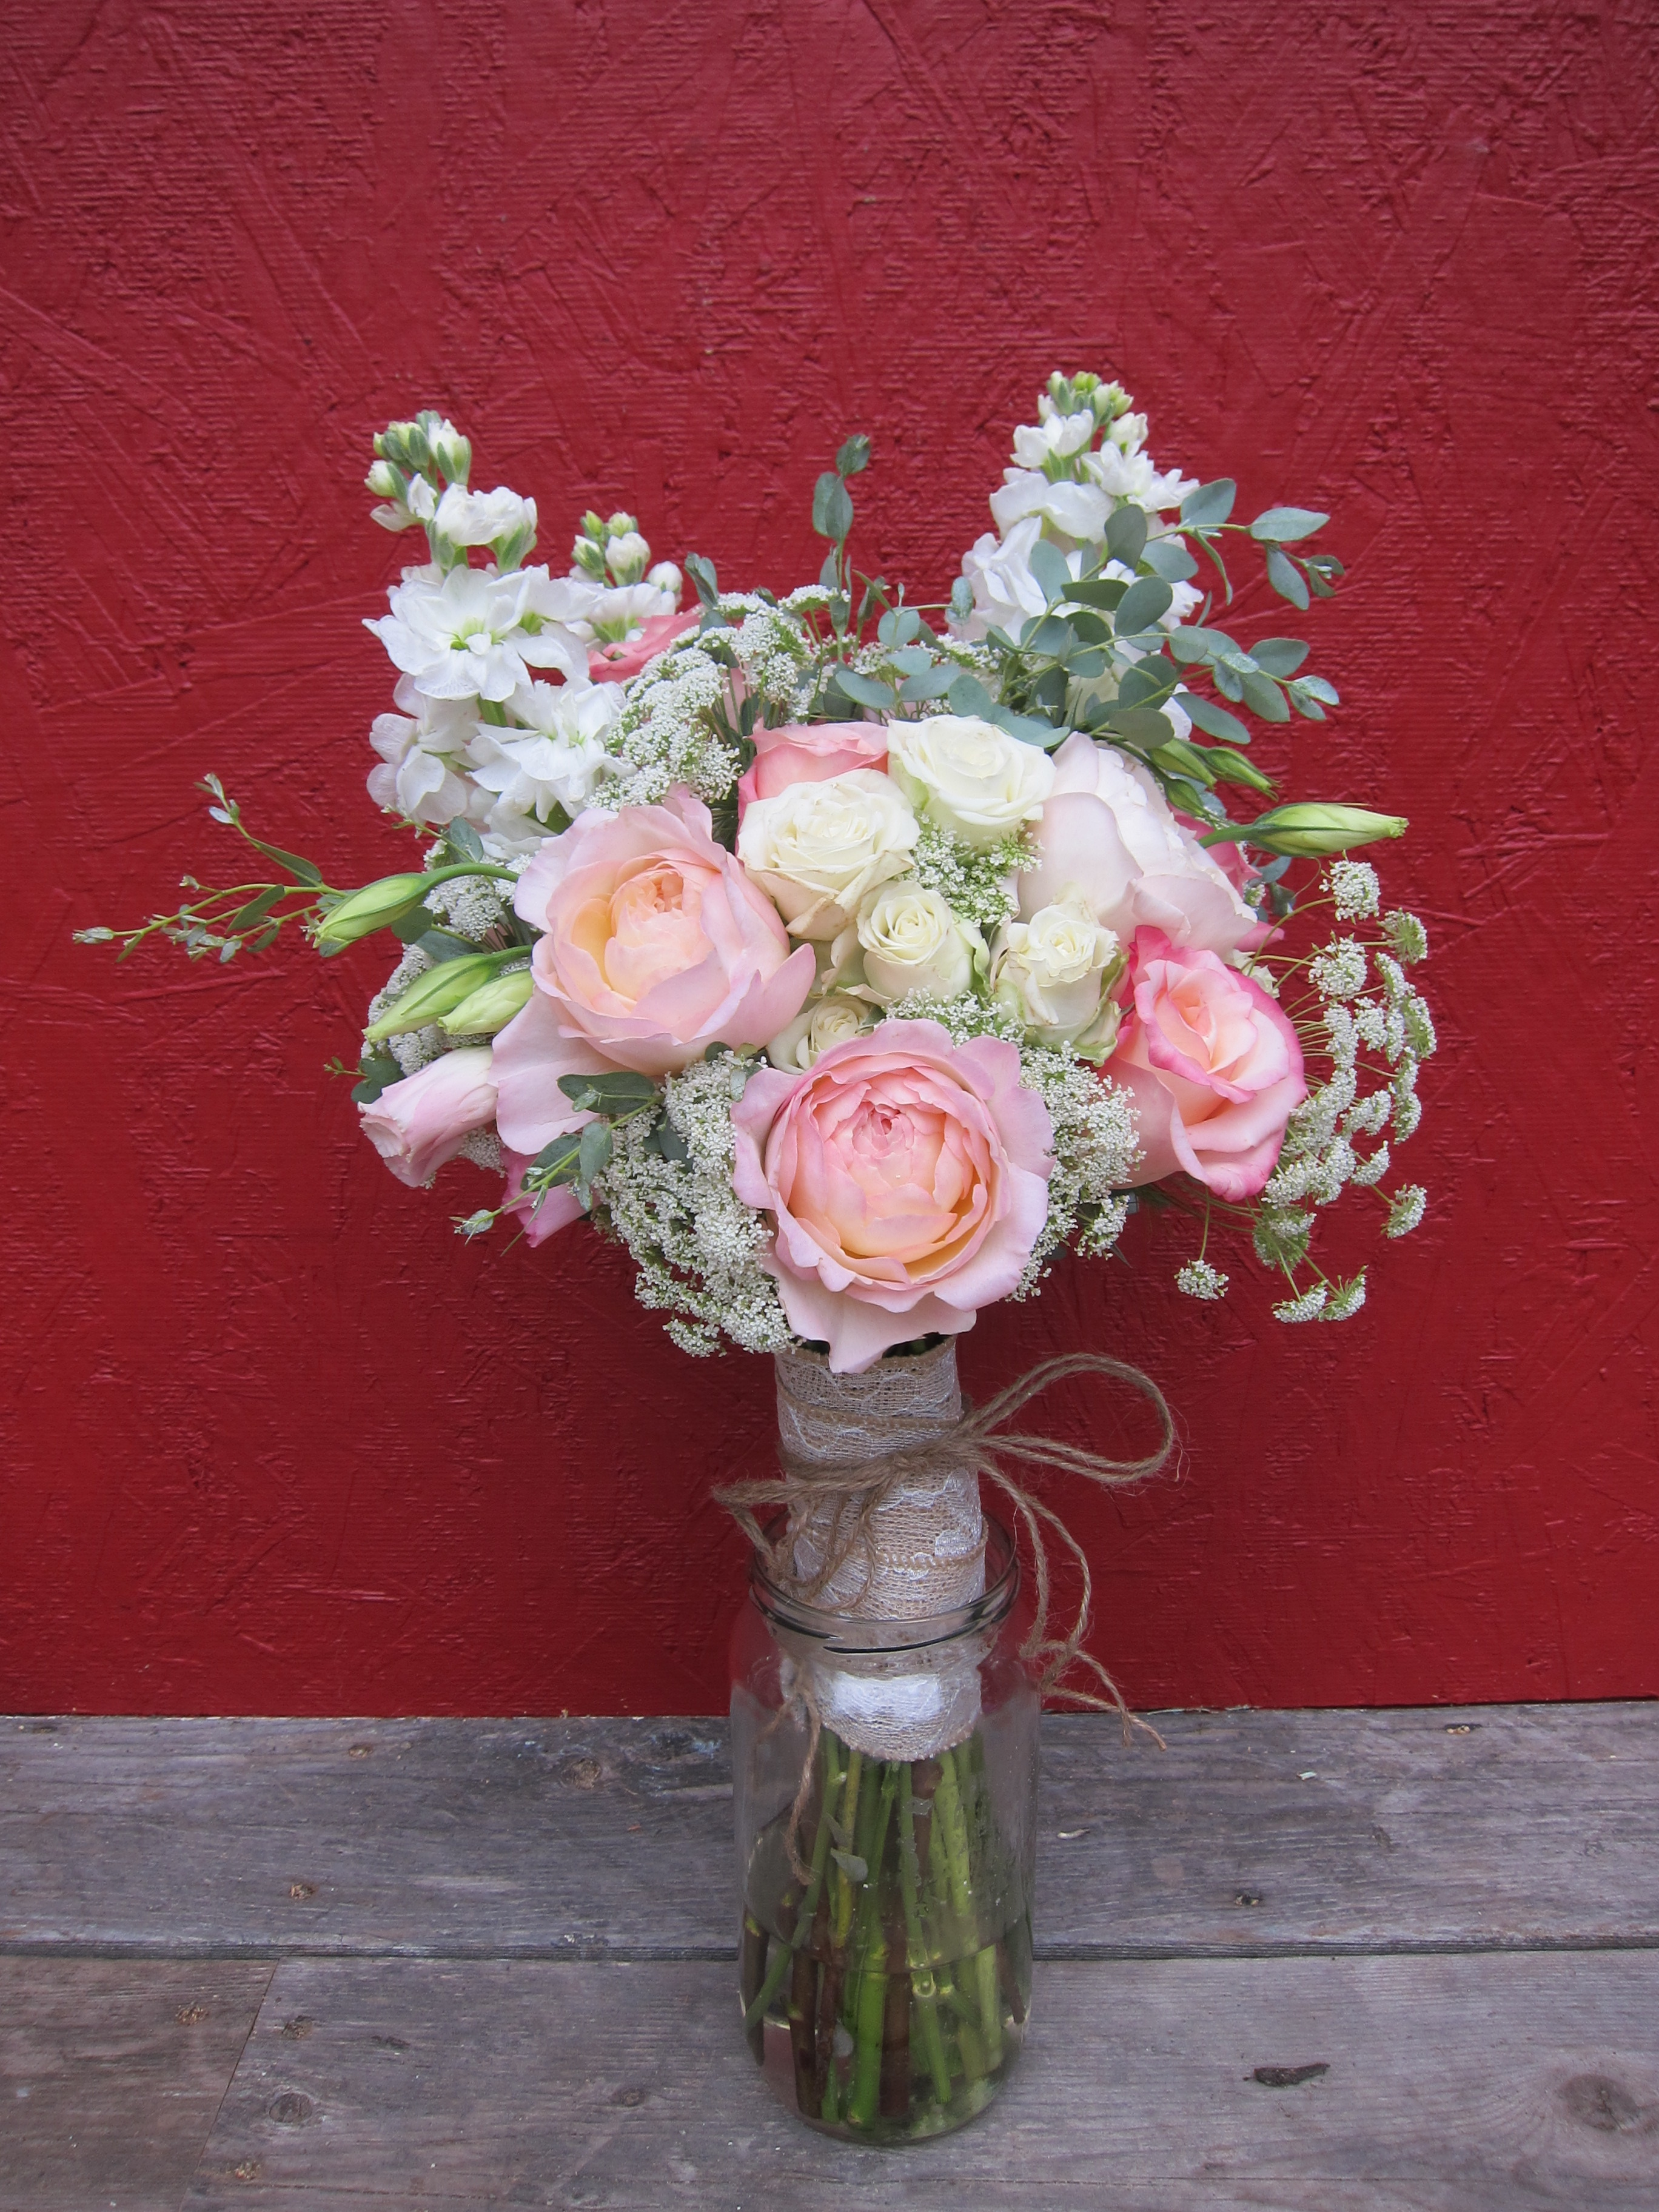 Bridal bouquet with blush garden roses queen annes lace stock weddings cara tylers mountaintop romance bridal bouquet izmirmasajfo